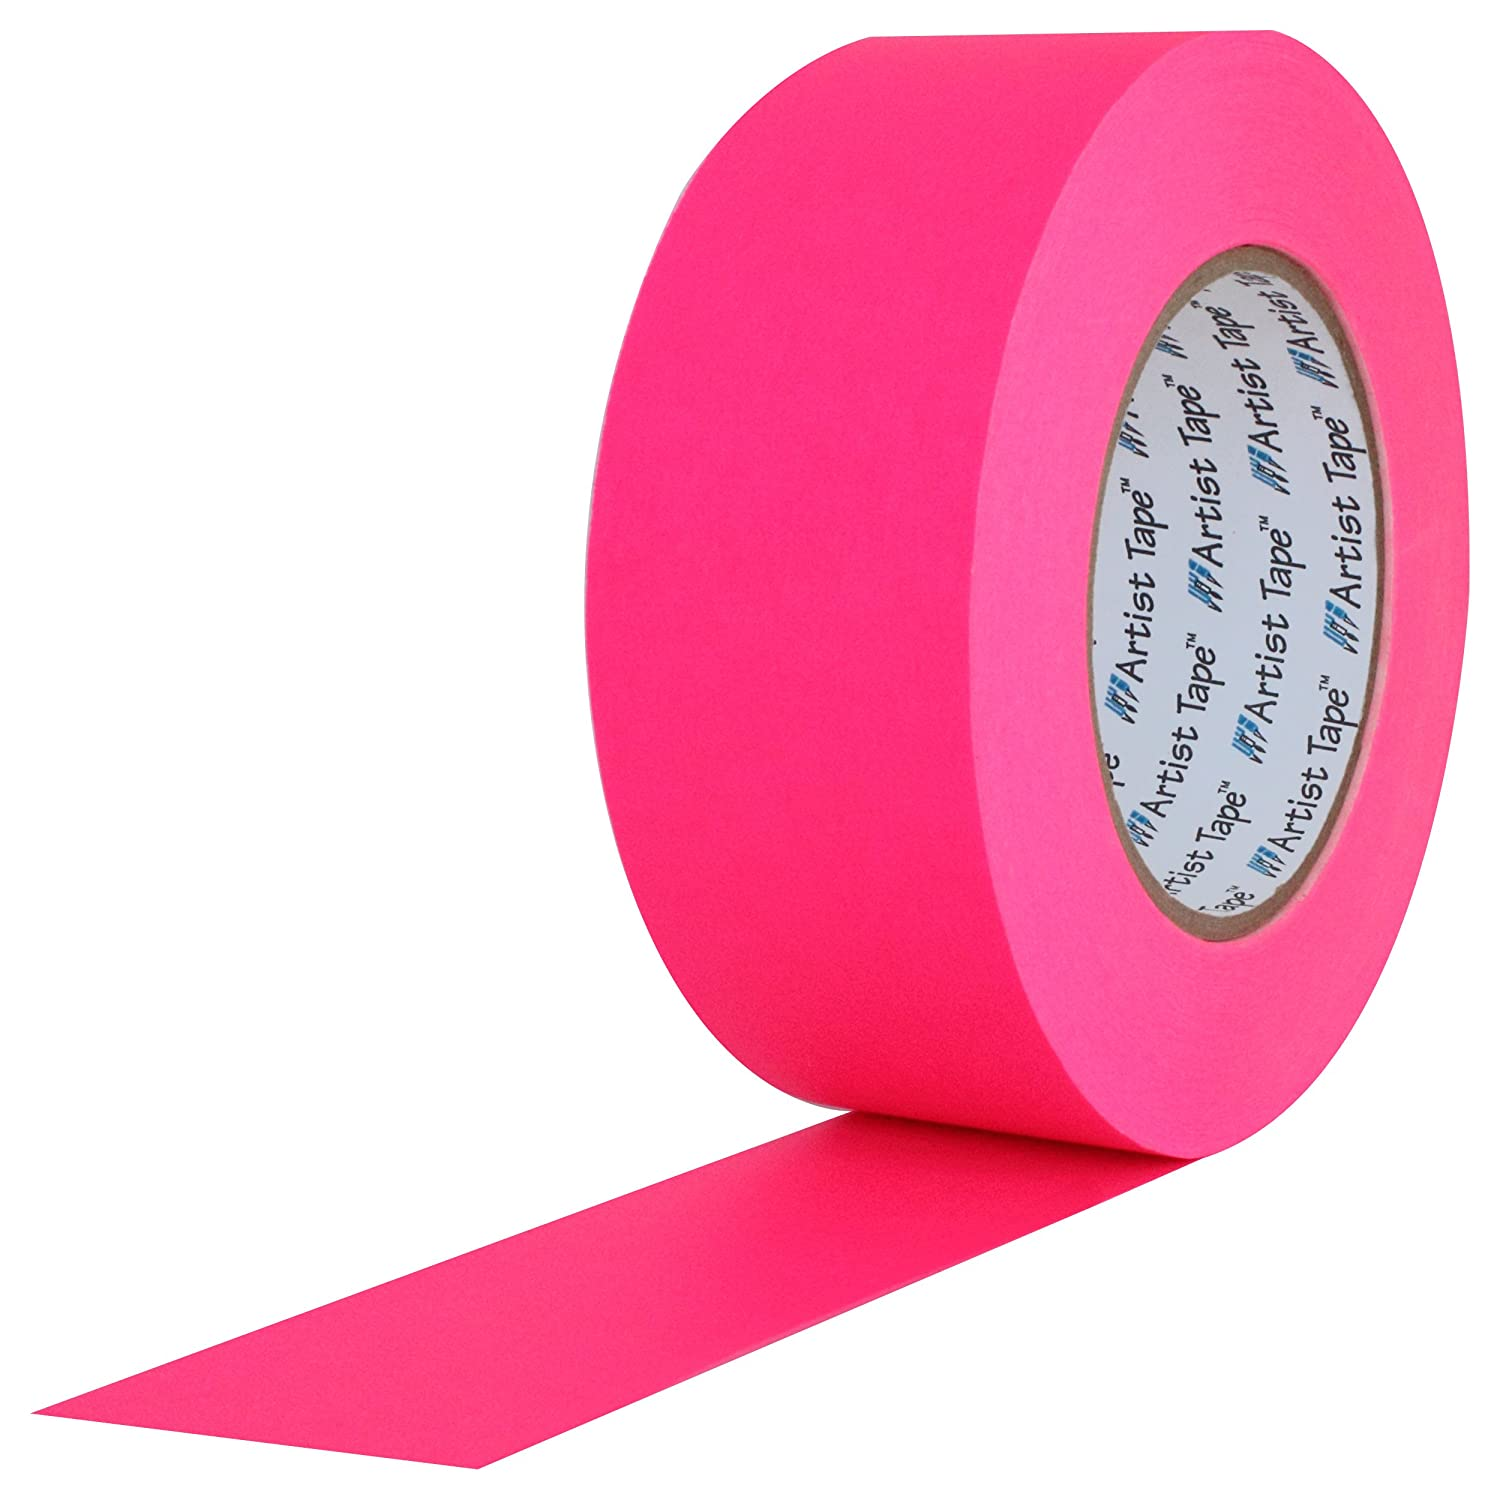 ProTapes Artist Tape Flatback Printable Paper or Console Board 全国一律送料無料 売店 T